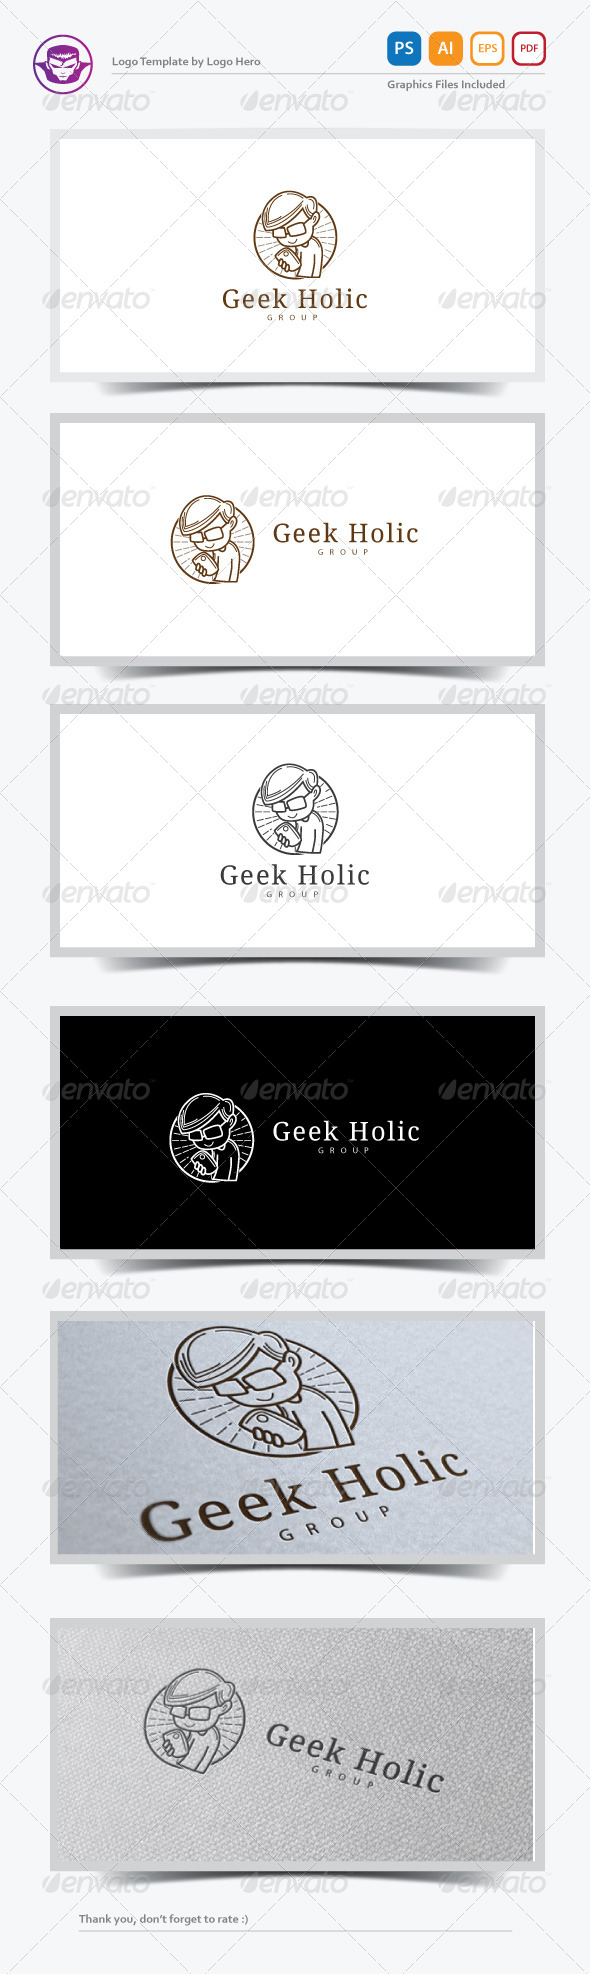 GraphicRiver Geek Holic Logo Template 7503704